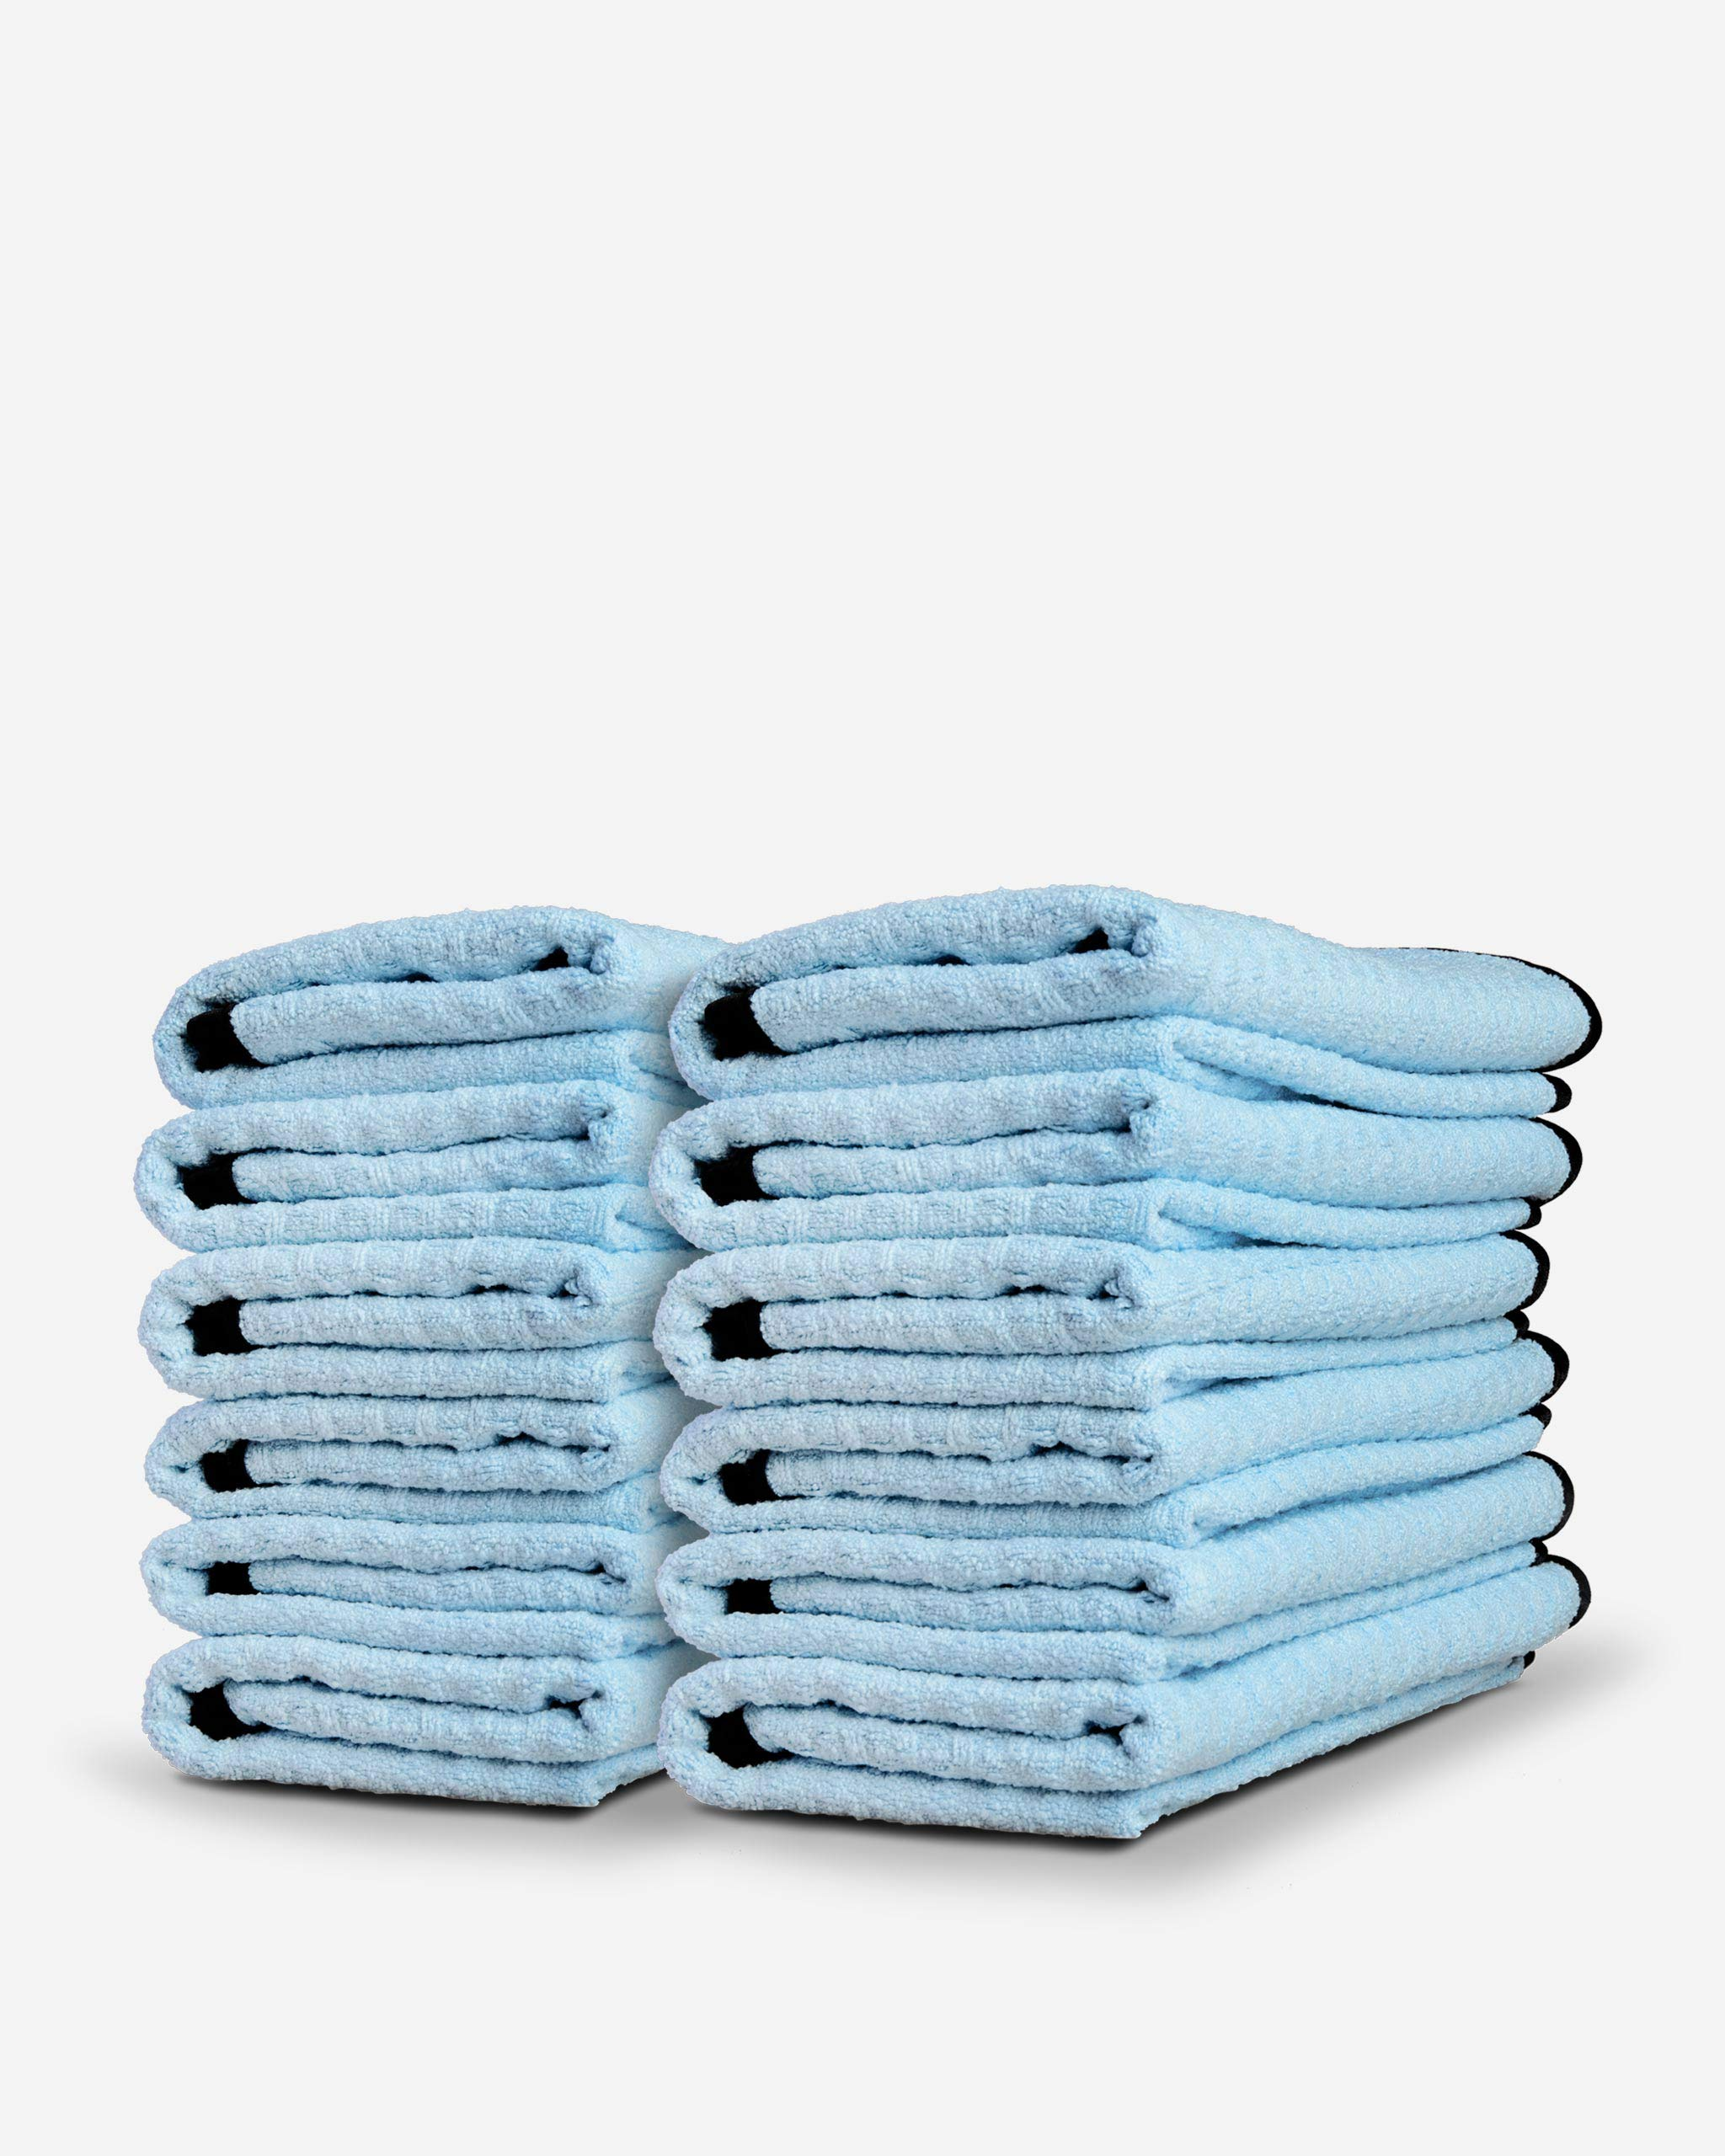 Adam's Waterless Wash Microfiber Towel - Waffle Weave Design Traps Dirt & Safely Cleans Your Car, Boat, RV, Truck, and More - Dries, Cleans with Waterless Wash System (12 Pack)